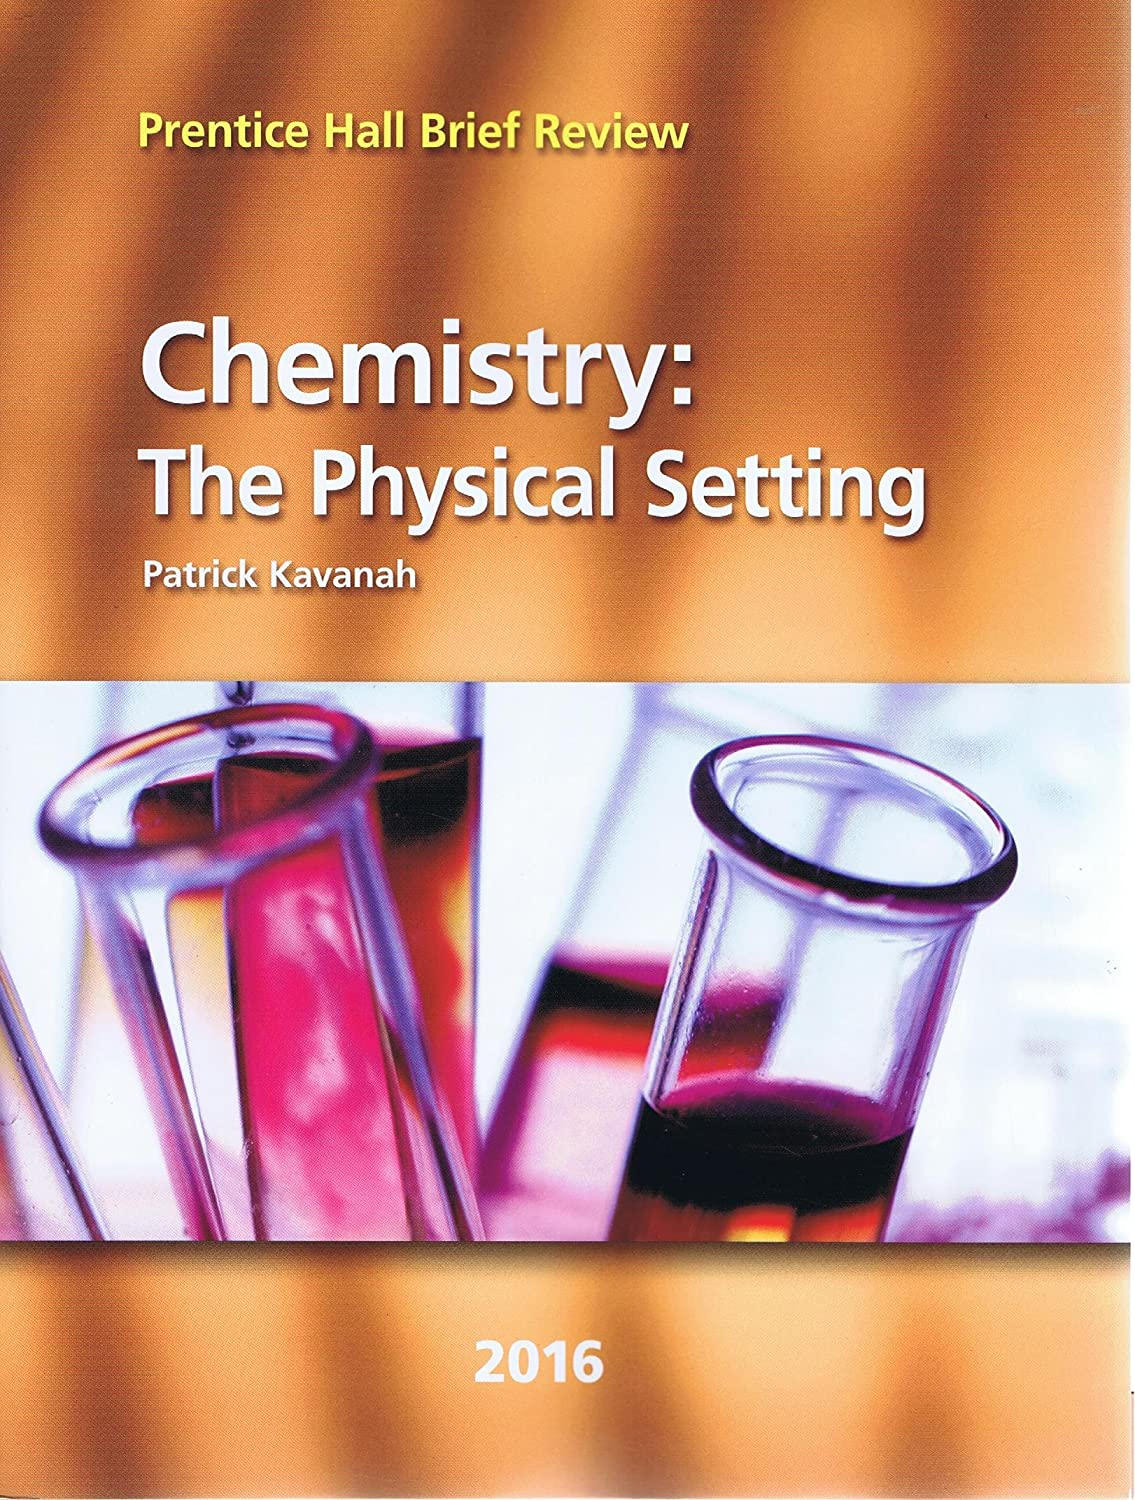 Amazon.com : 2016 Prentice Hall Brief Review Chemistry: The ...